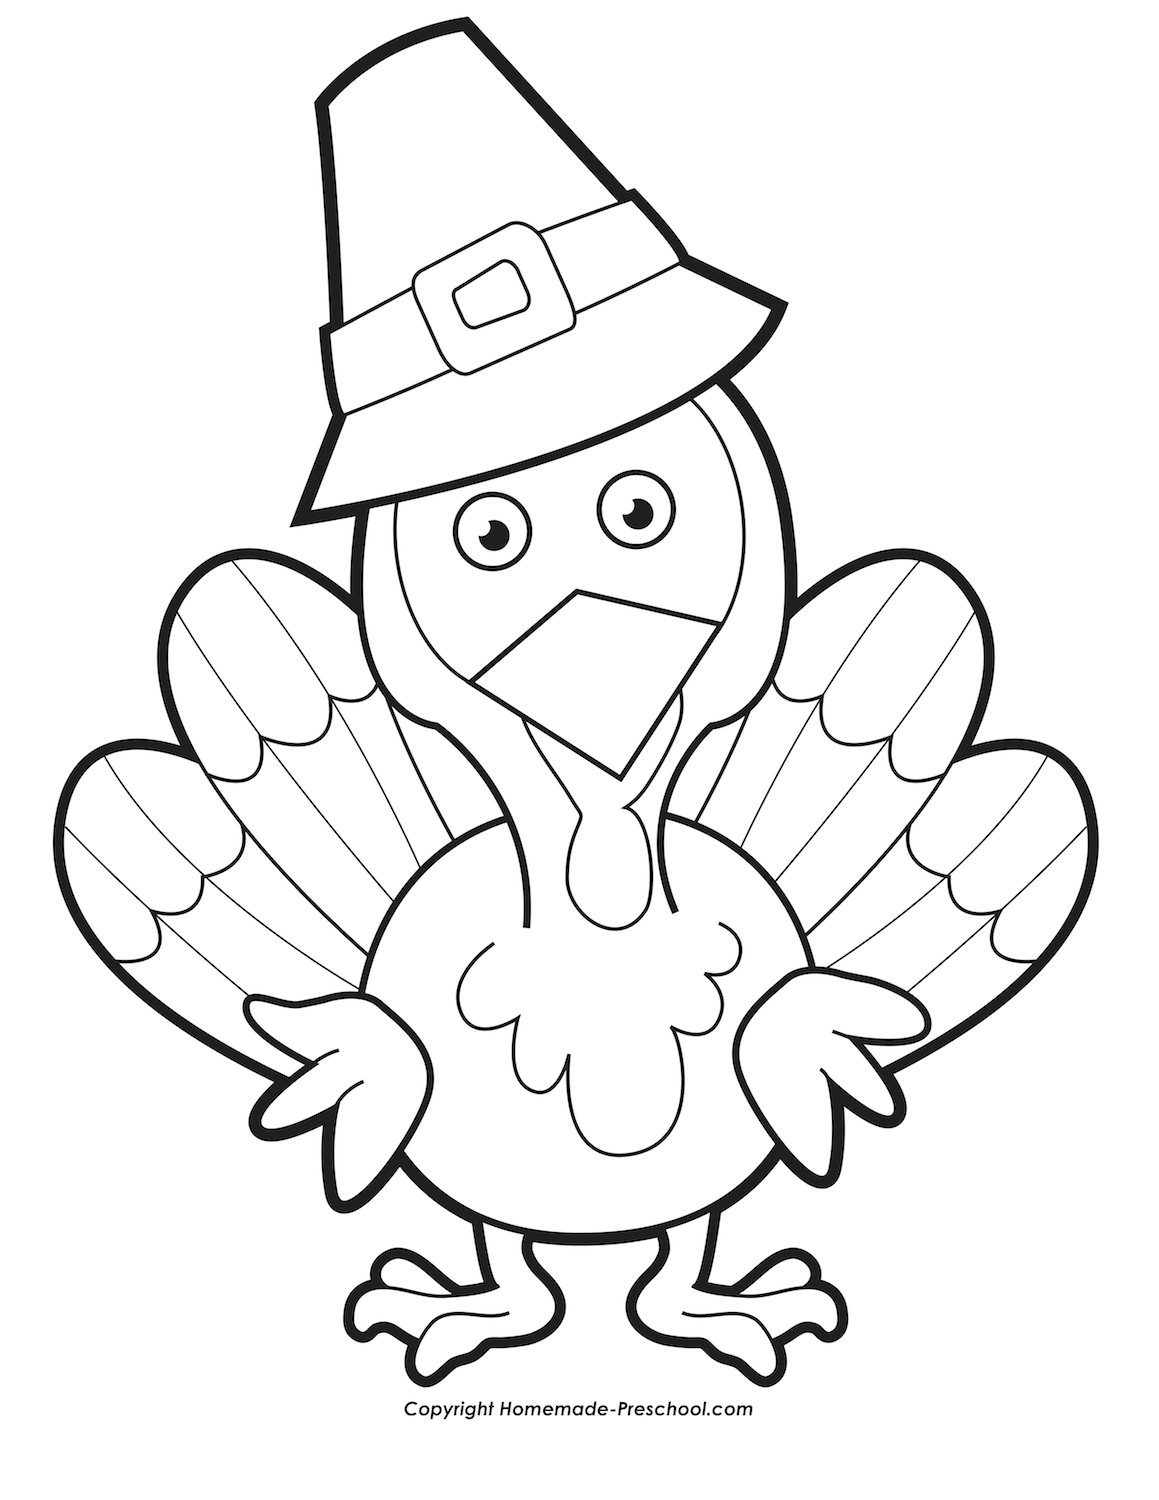 Printable Thanksgiving Coloring Pages By Number